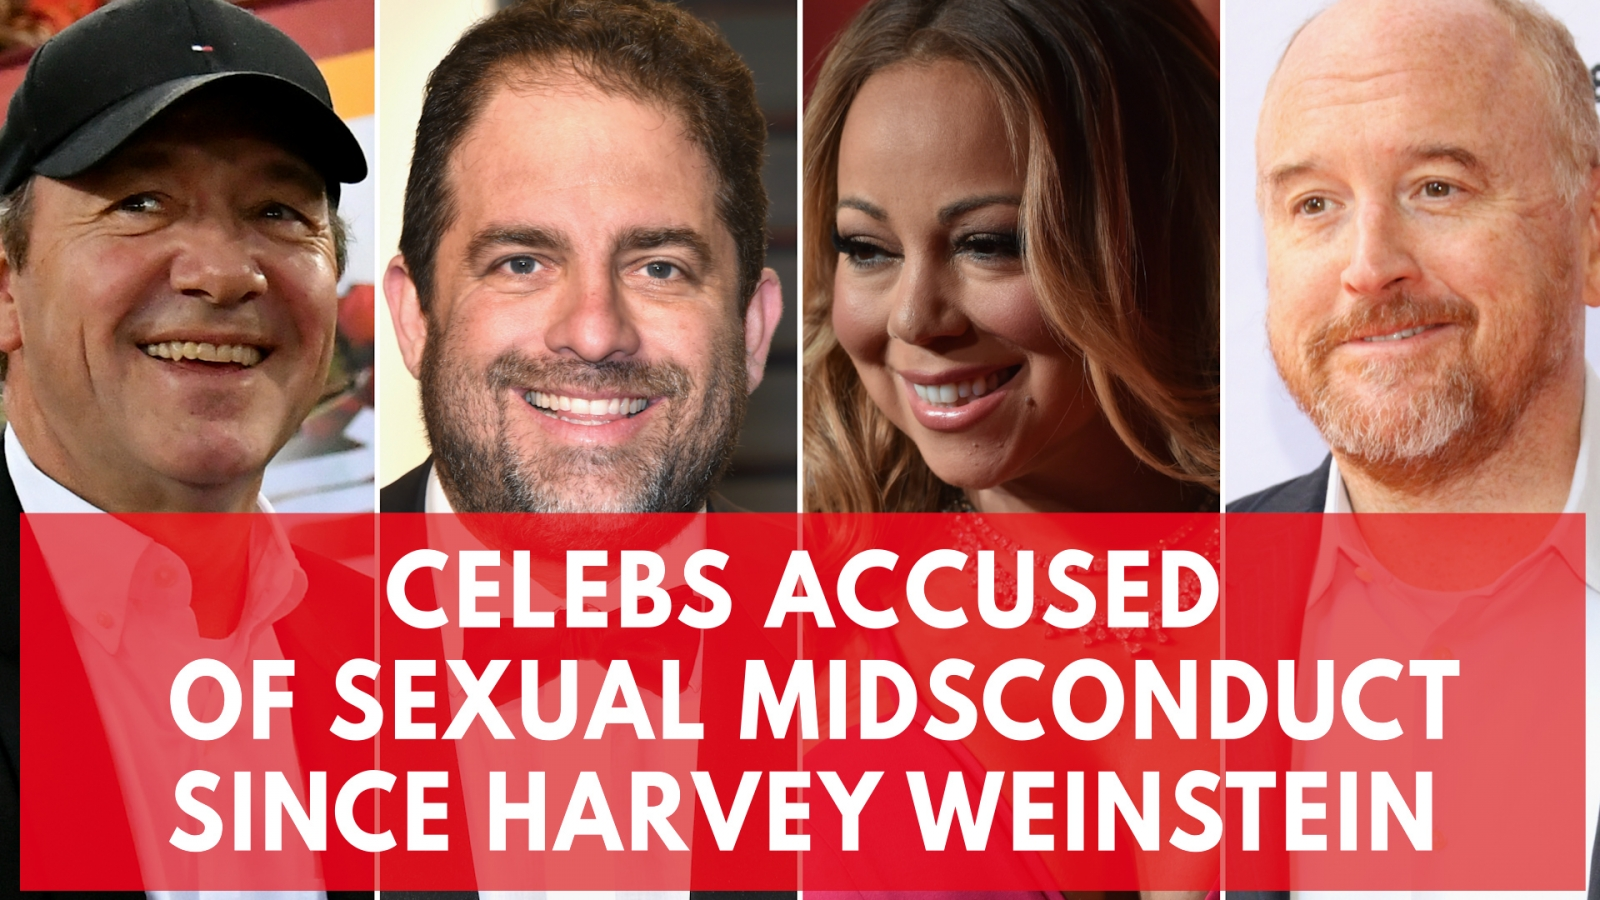 high-profile-celebrities-whove-been-accused-of-sexual-misconduct-since-harvey-weinstein